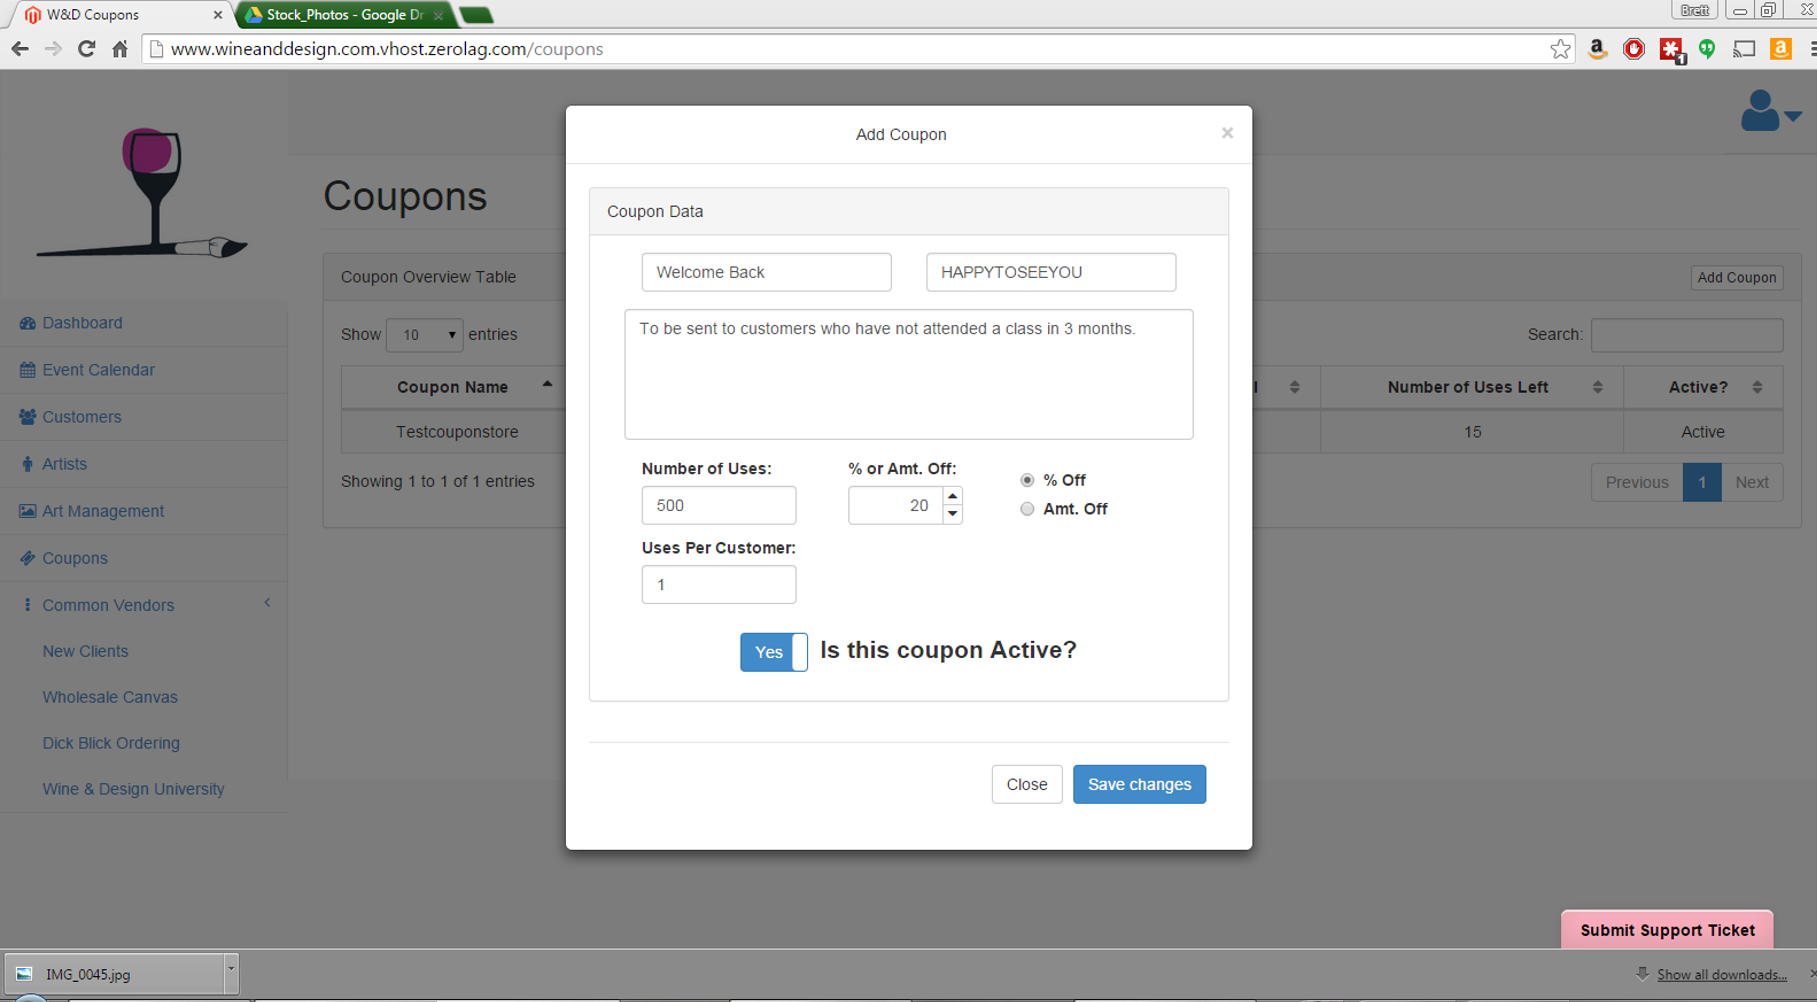 a typical coupon code creation. note that we limit to a single user per customer but we allow for many total uses.